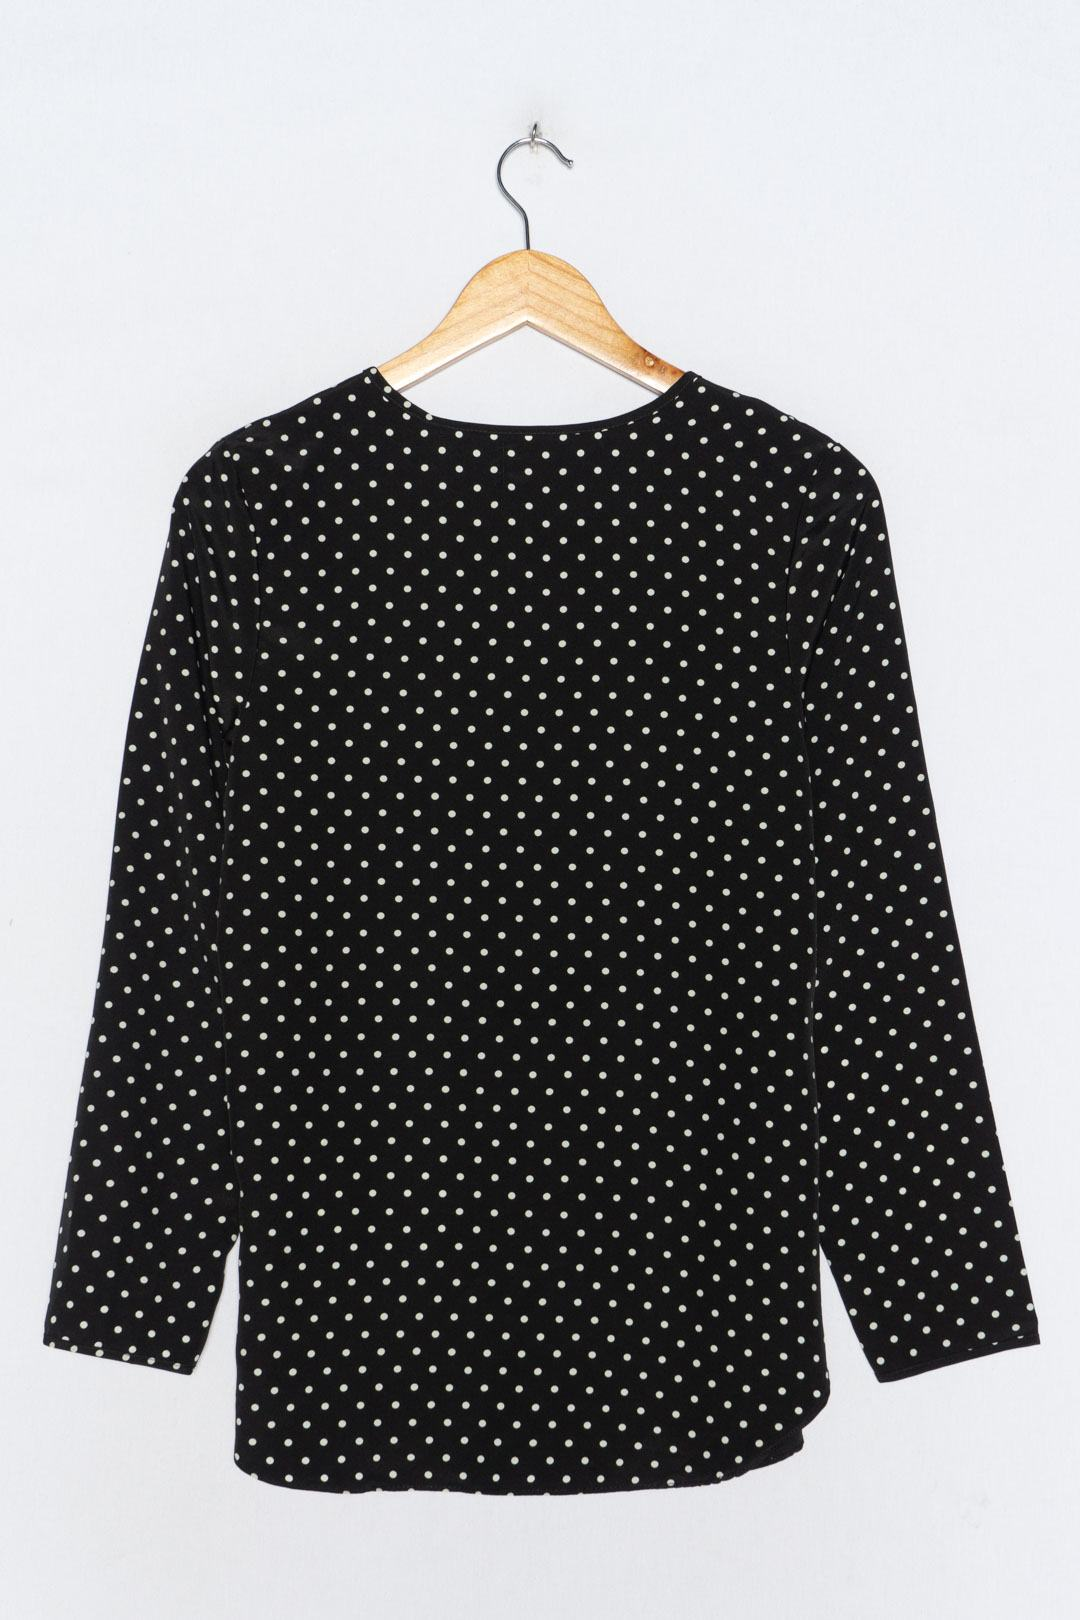 Black White Dotted Blouse S - VinoKilo.com